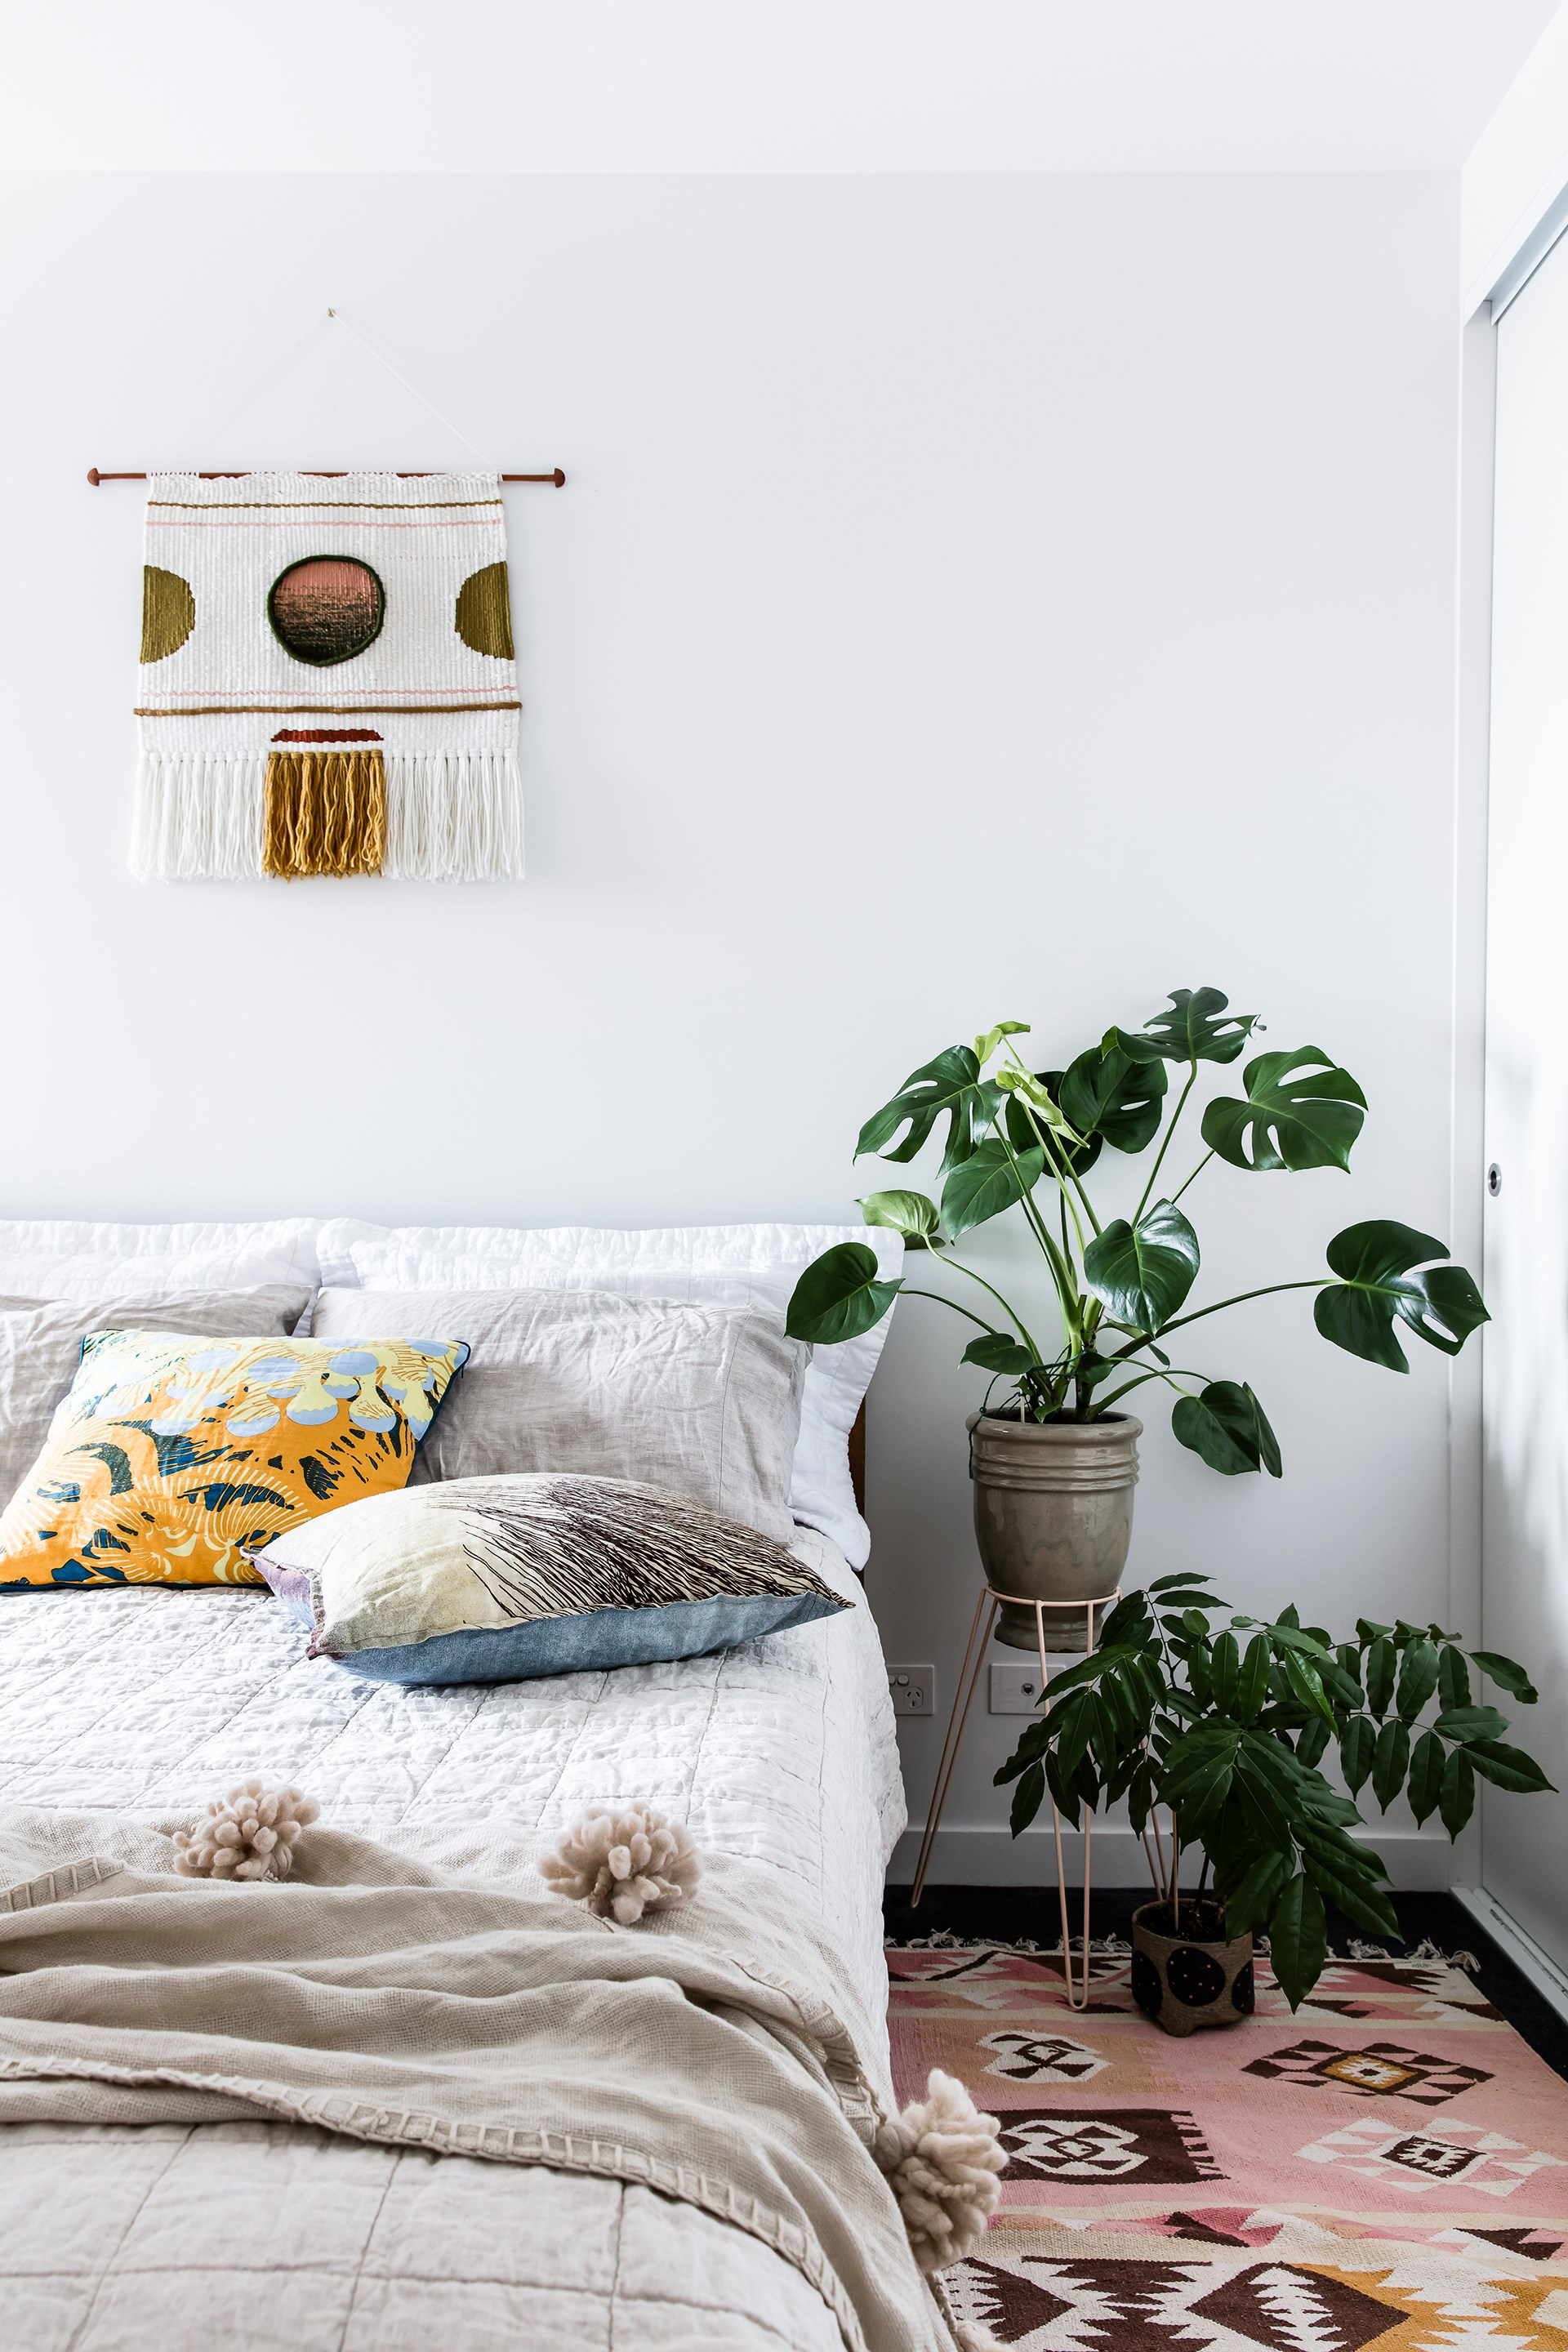 """Texture provides the point of interest – and allows you to sink into a space, with comfort as the number one concern.   See more of this [leafy Melbourne apartment](http://www.homestolove.com.au/off-the-plant-apartment-doubles-as-indoor-jungle-3658